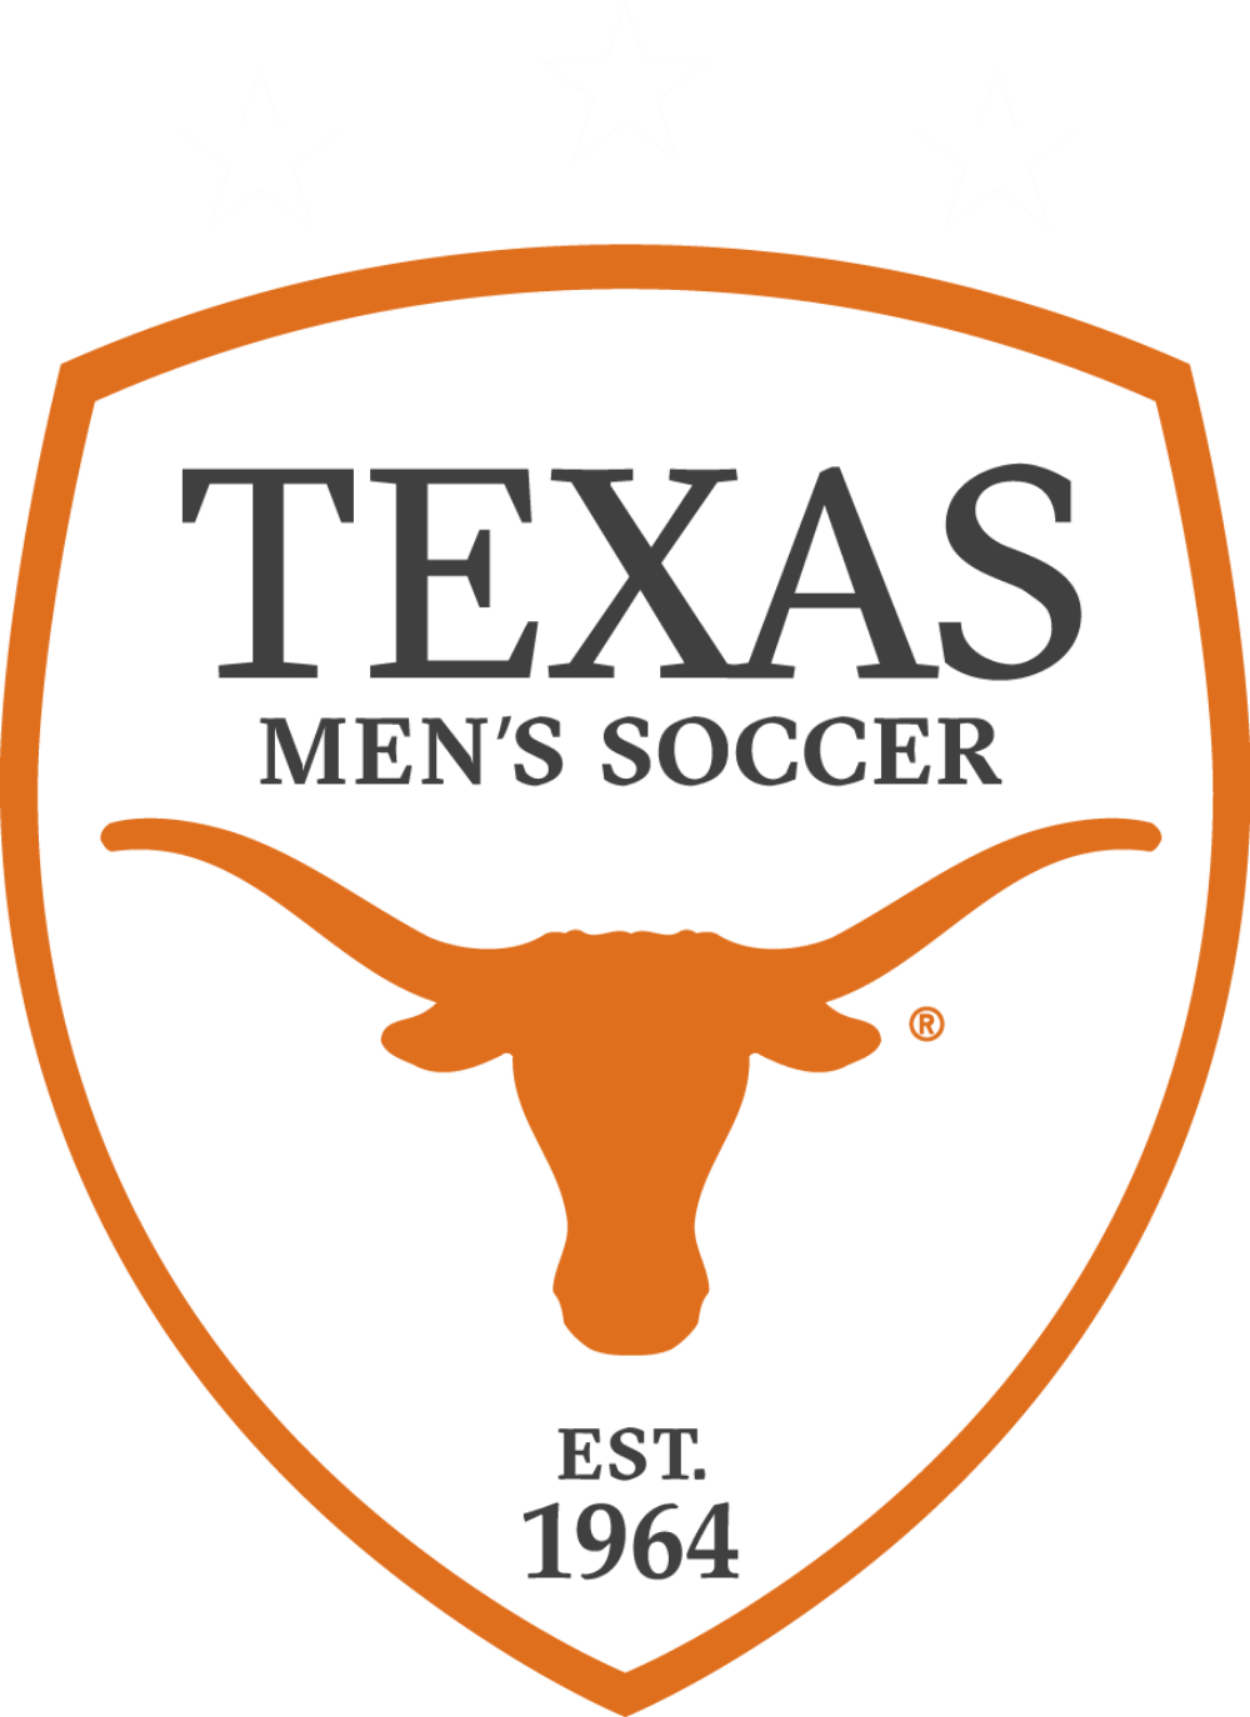 Texas Men's Soccer